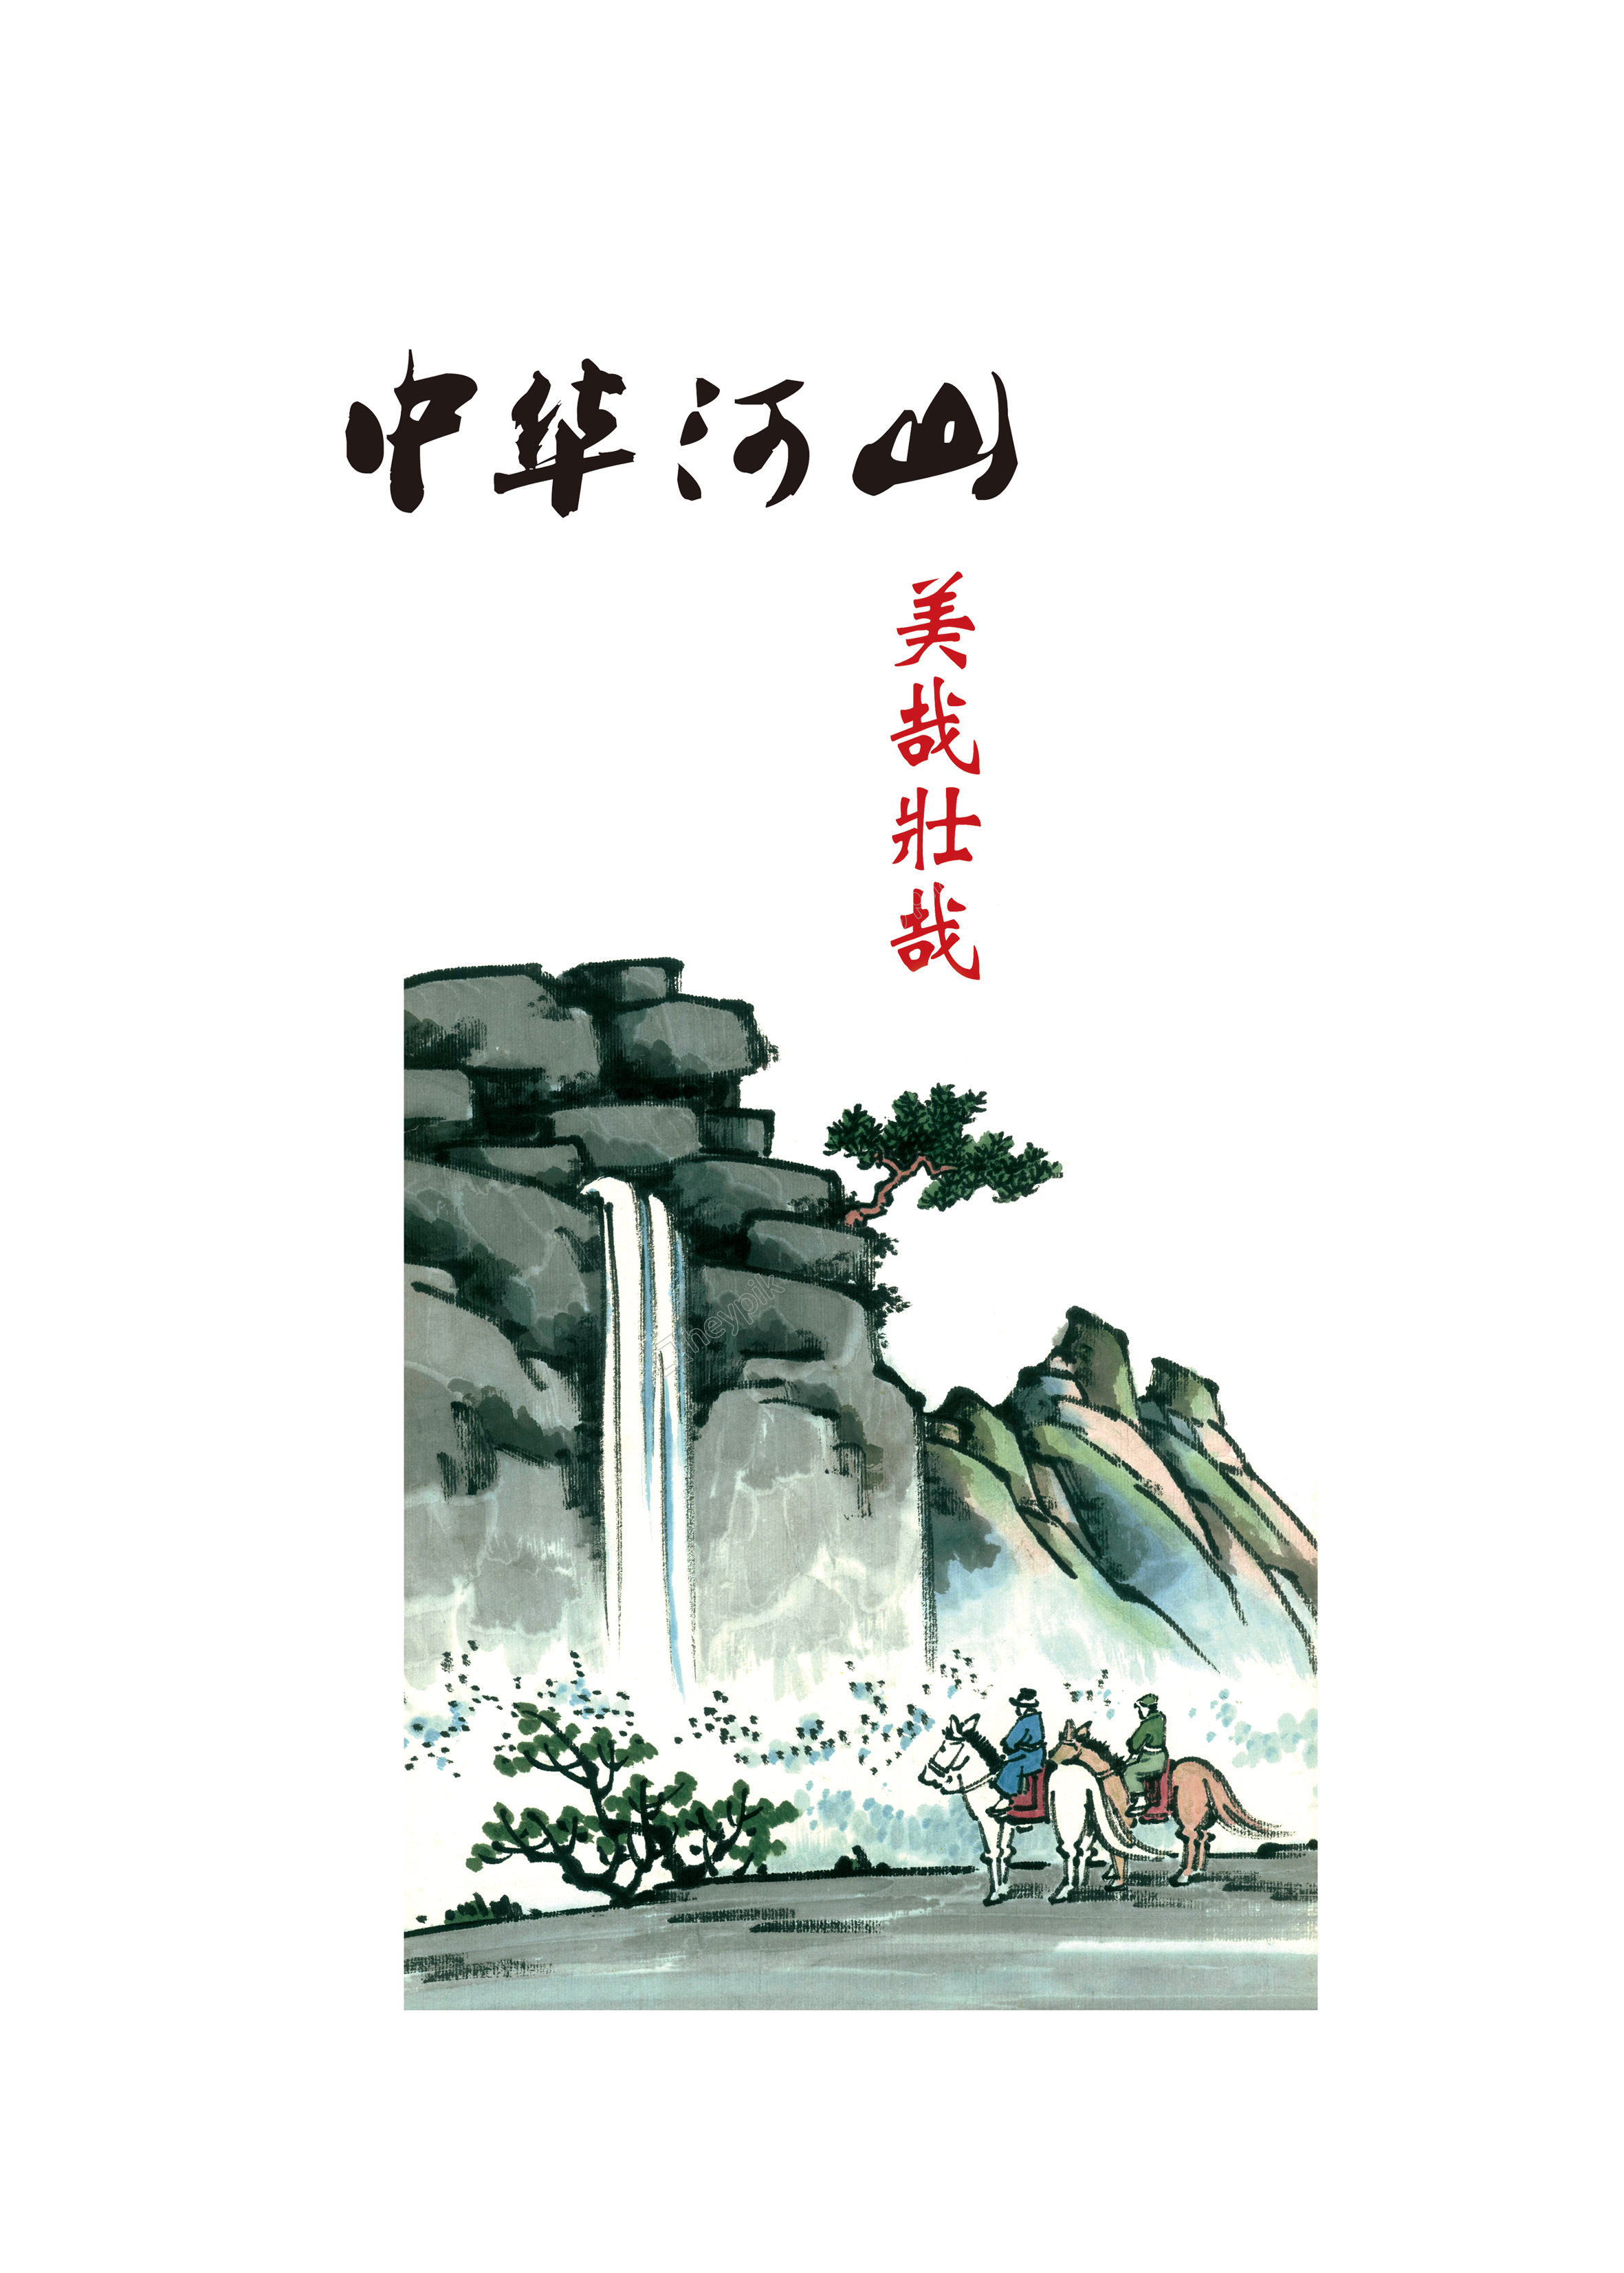 Moutain vector mountain chinese. River and mountains beautiful